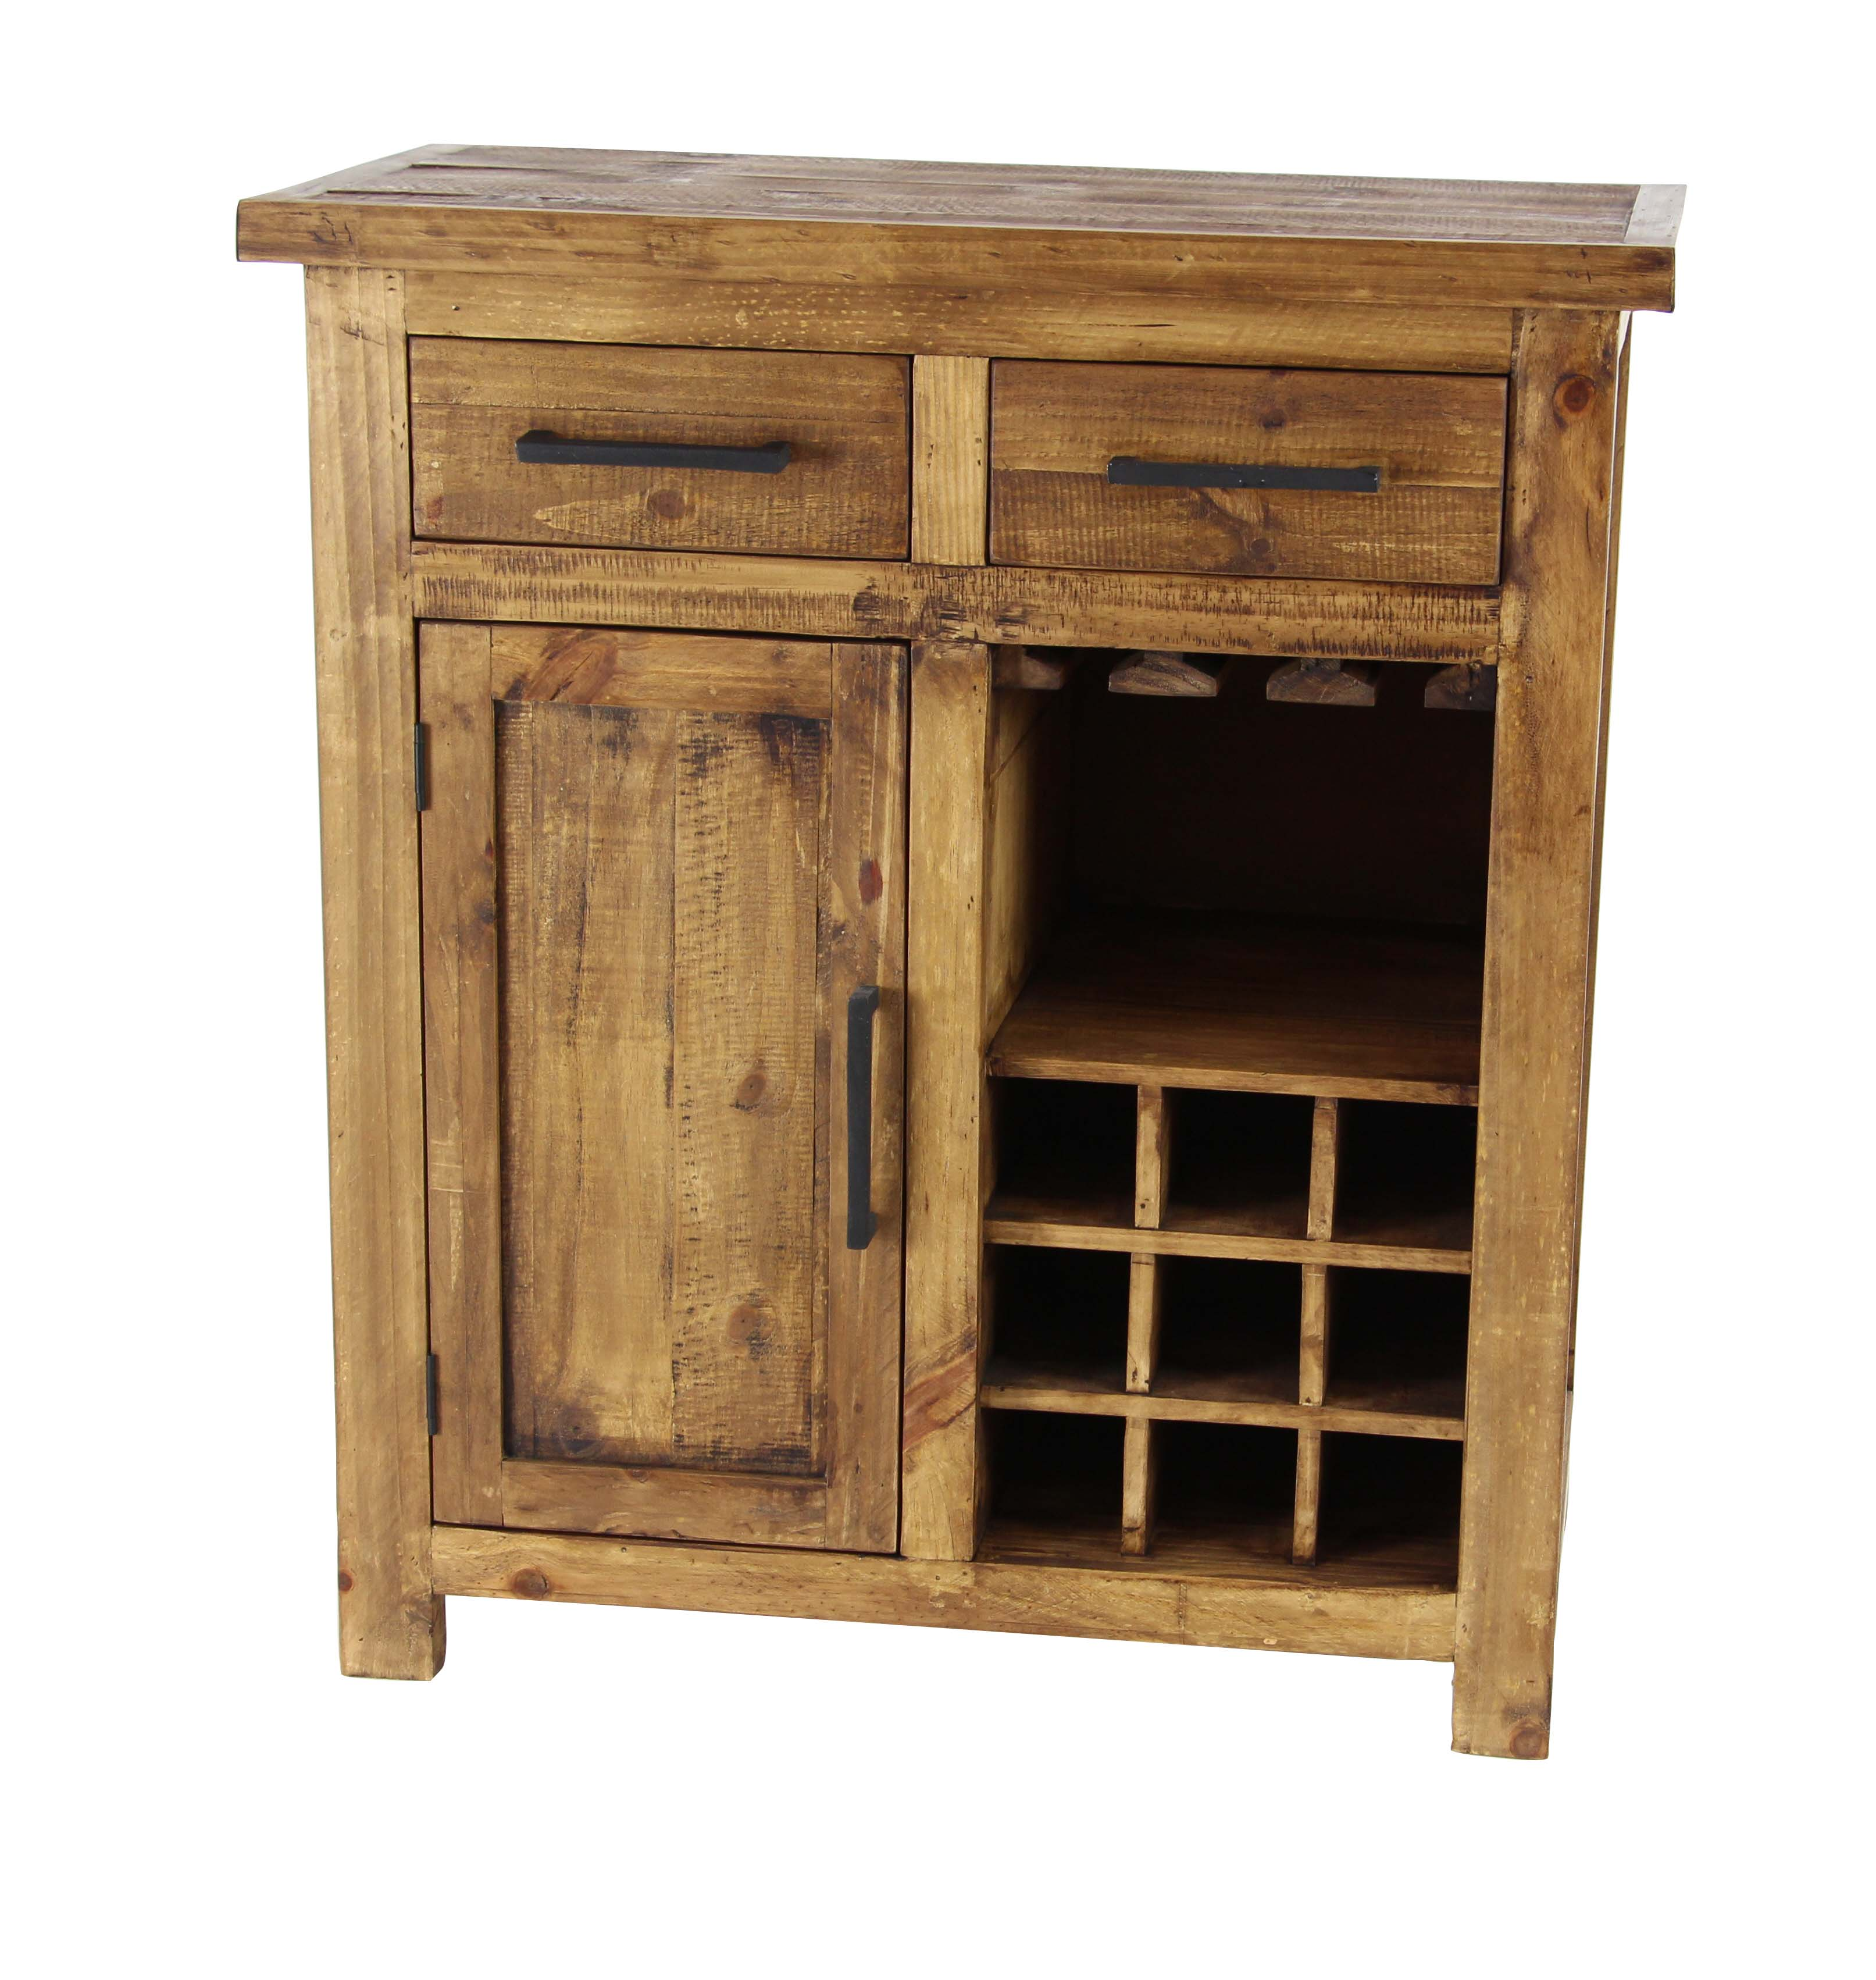 Decmode Rustic Pine Wood Brown 9-Bottle Wine Cabinet With Drawers and Stemware Rack, Brown by DecMode